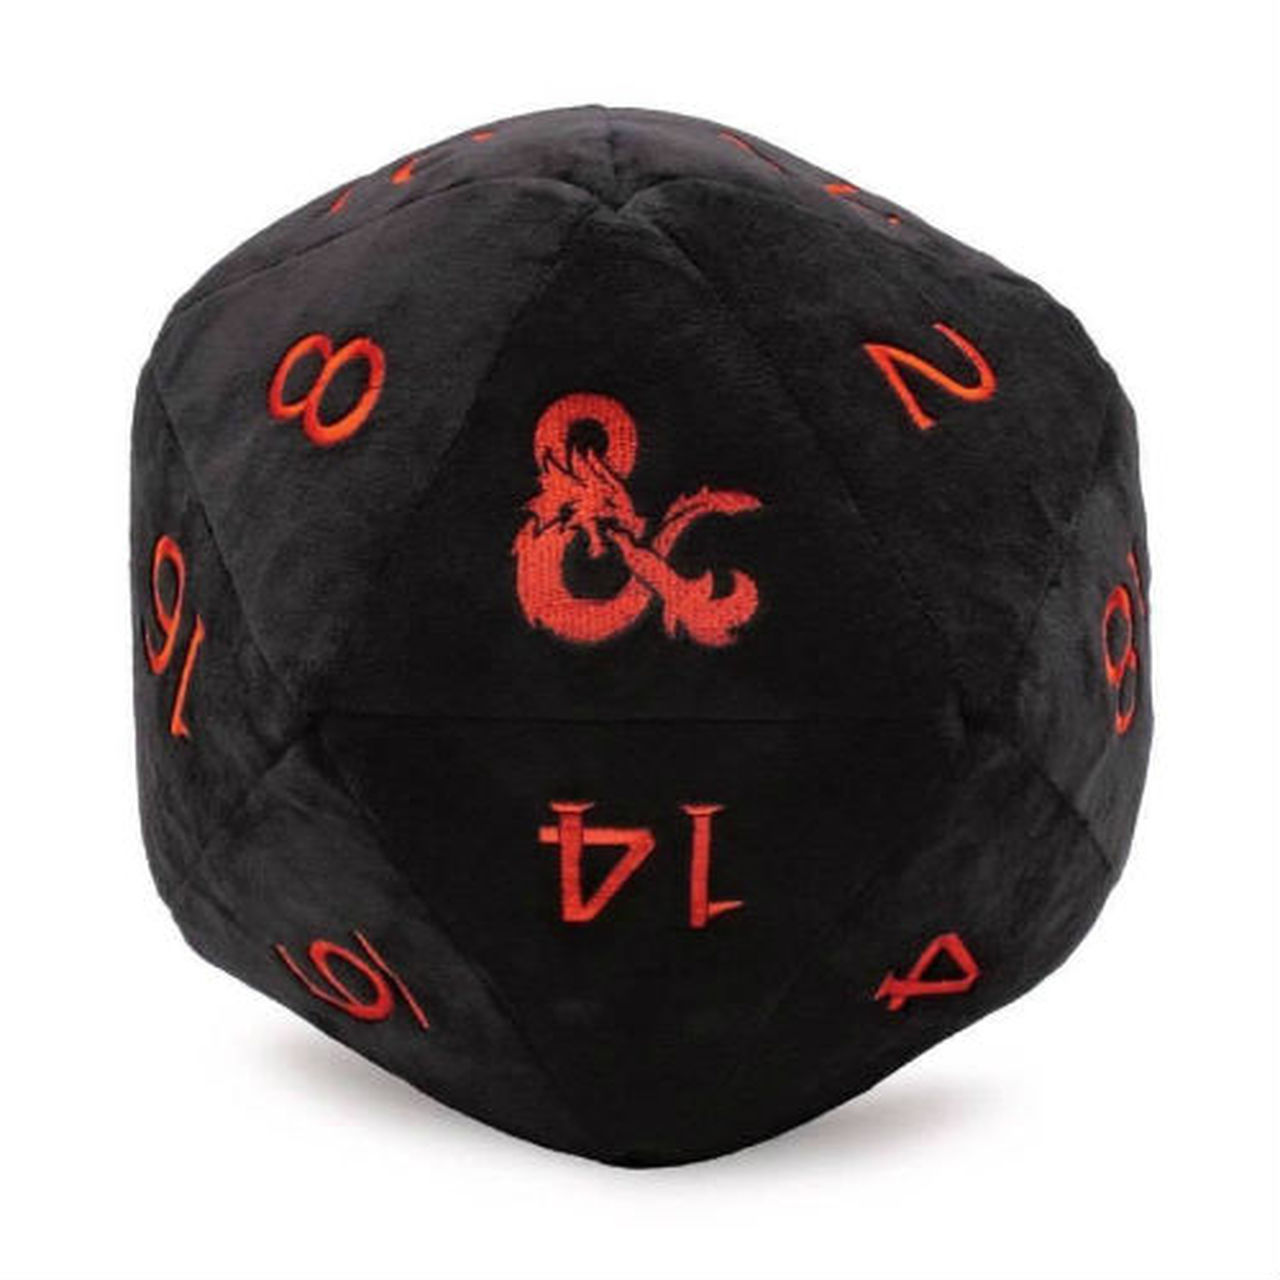 Dungeons & Dragons D20 Jumbo Plush